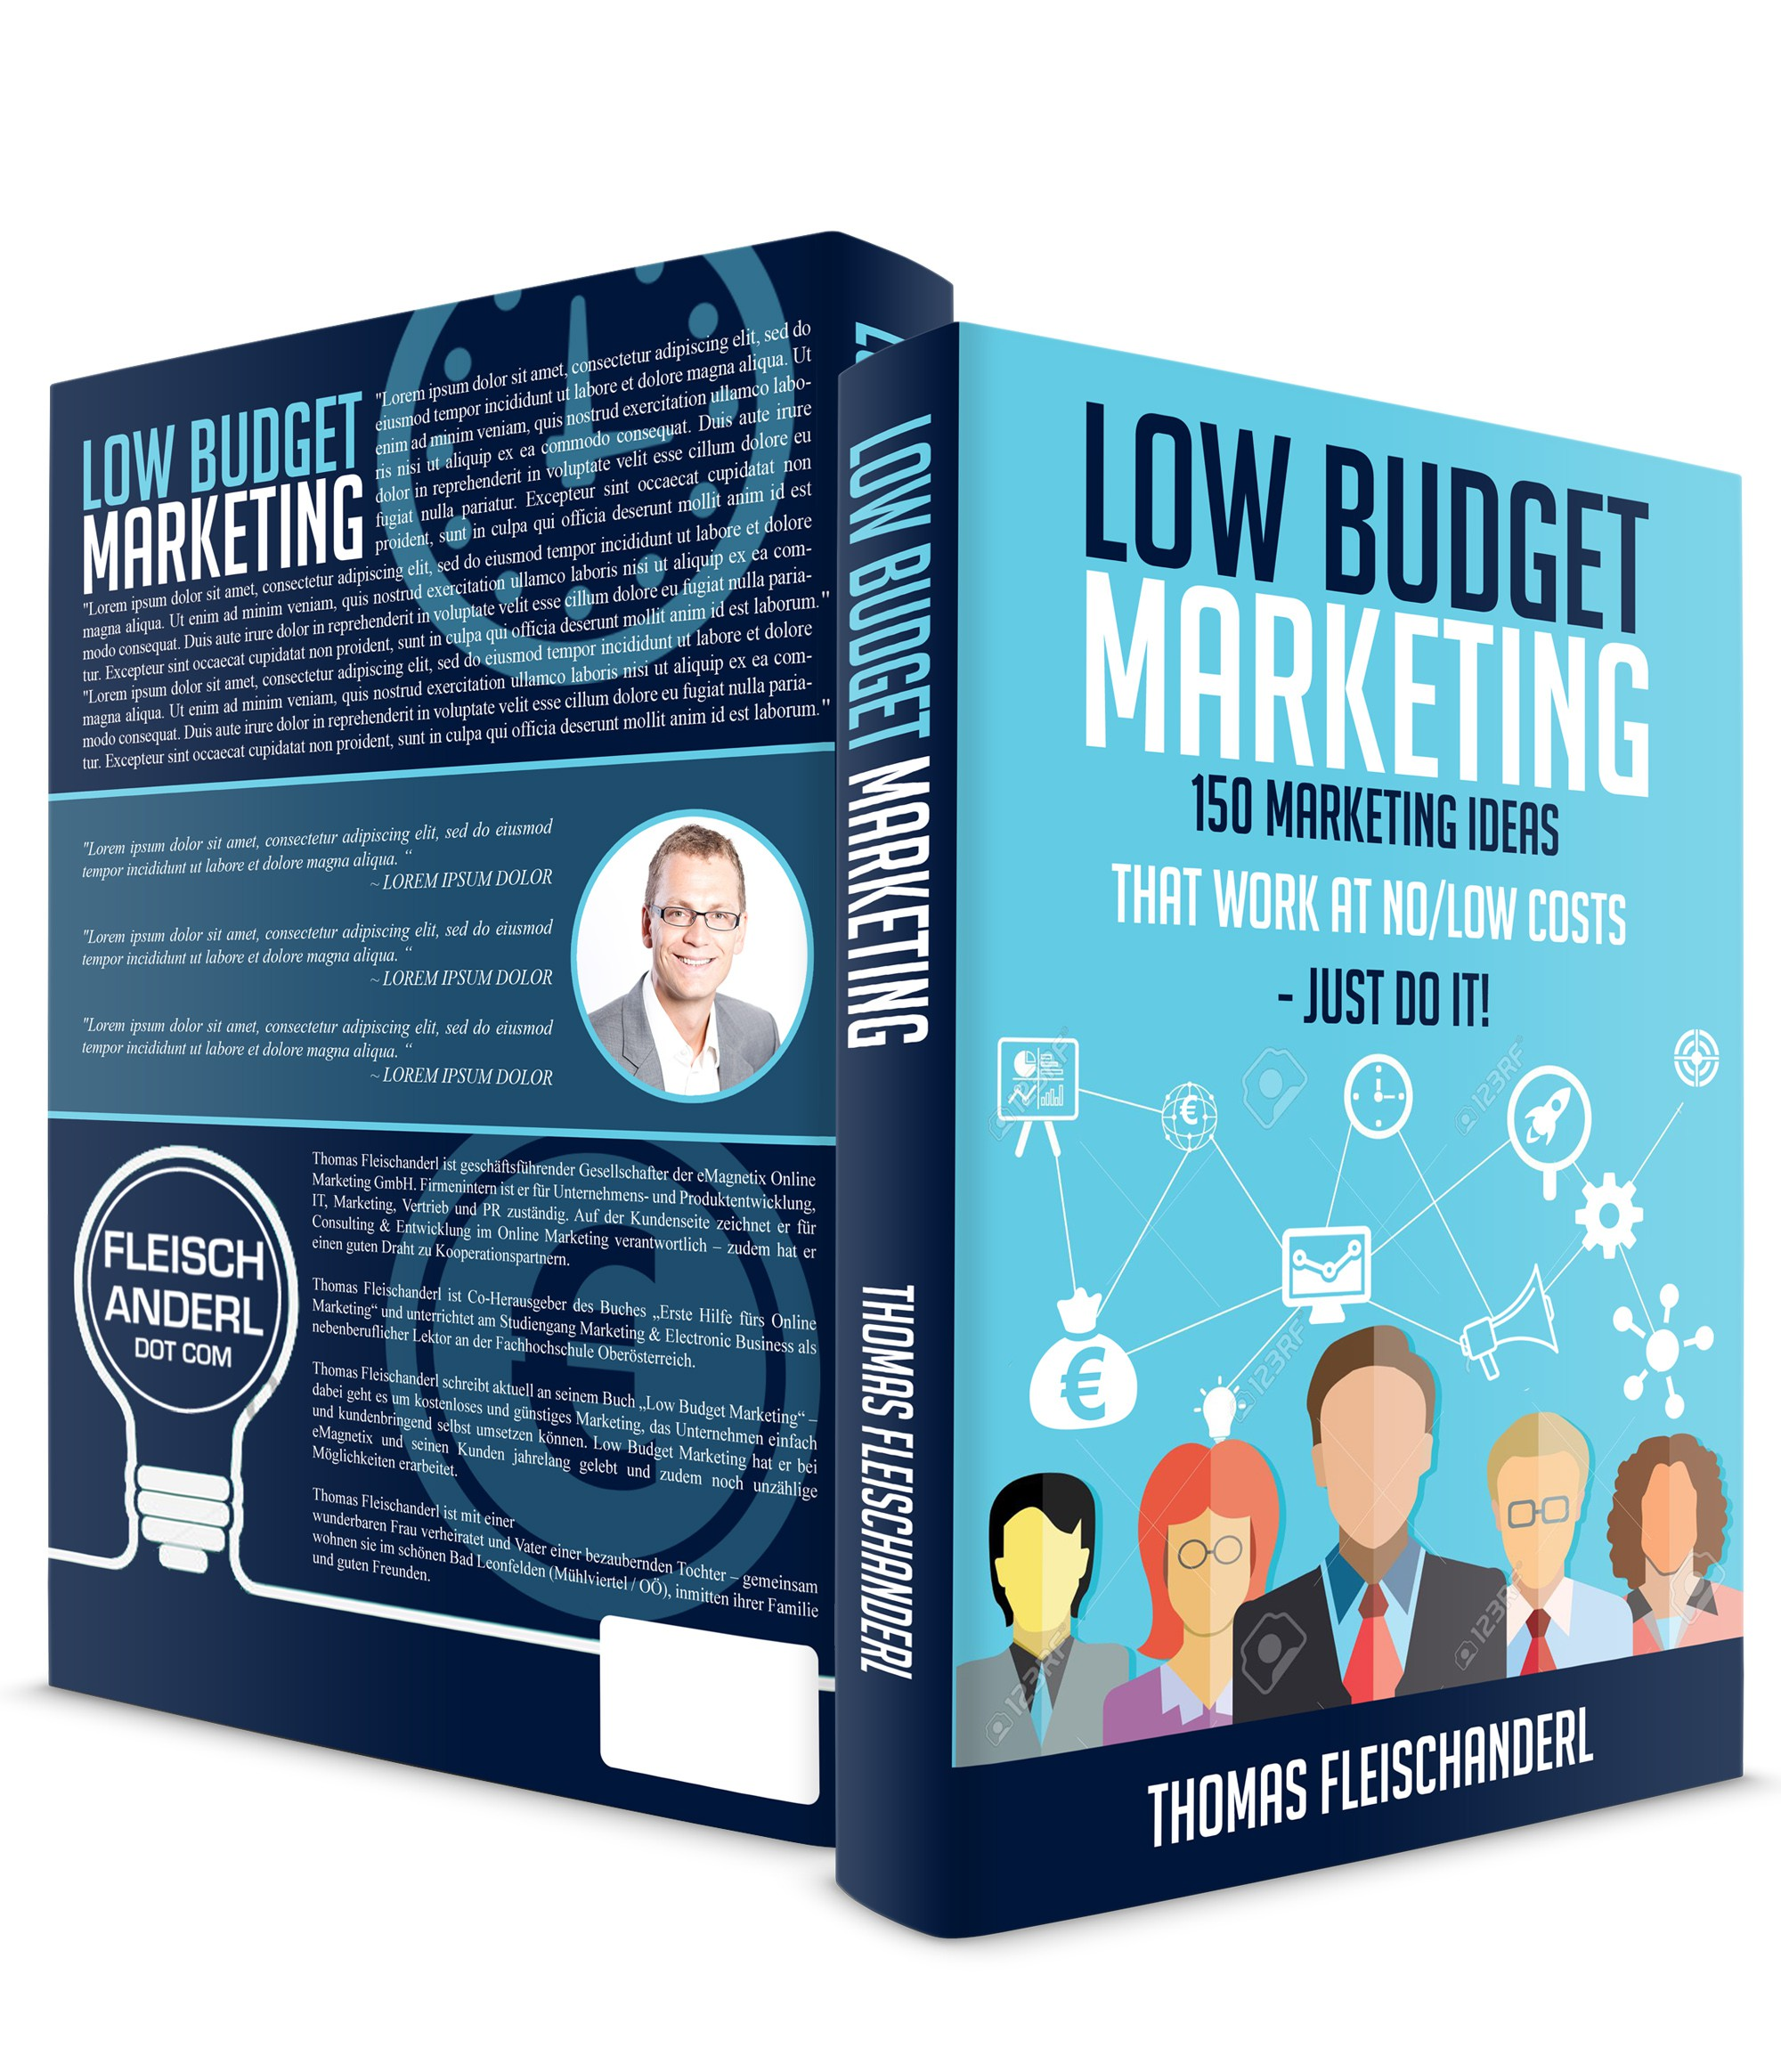 Create a fabulous book cover for a fascinating marketing book